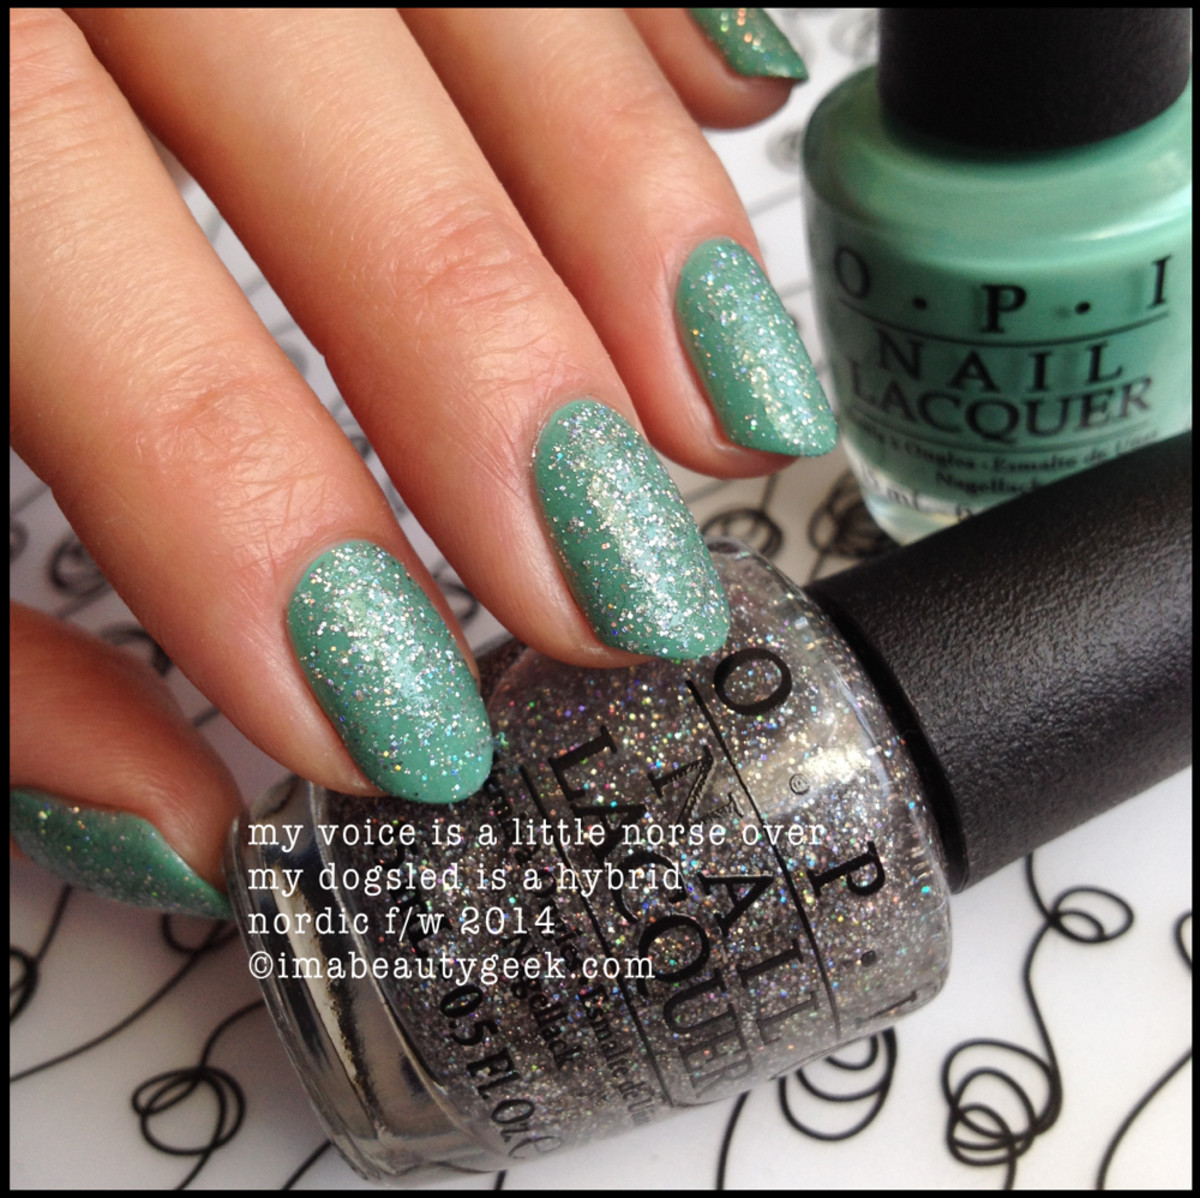 opi nordic my voice is a little norse over opi my dogsled is a hybrid